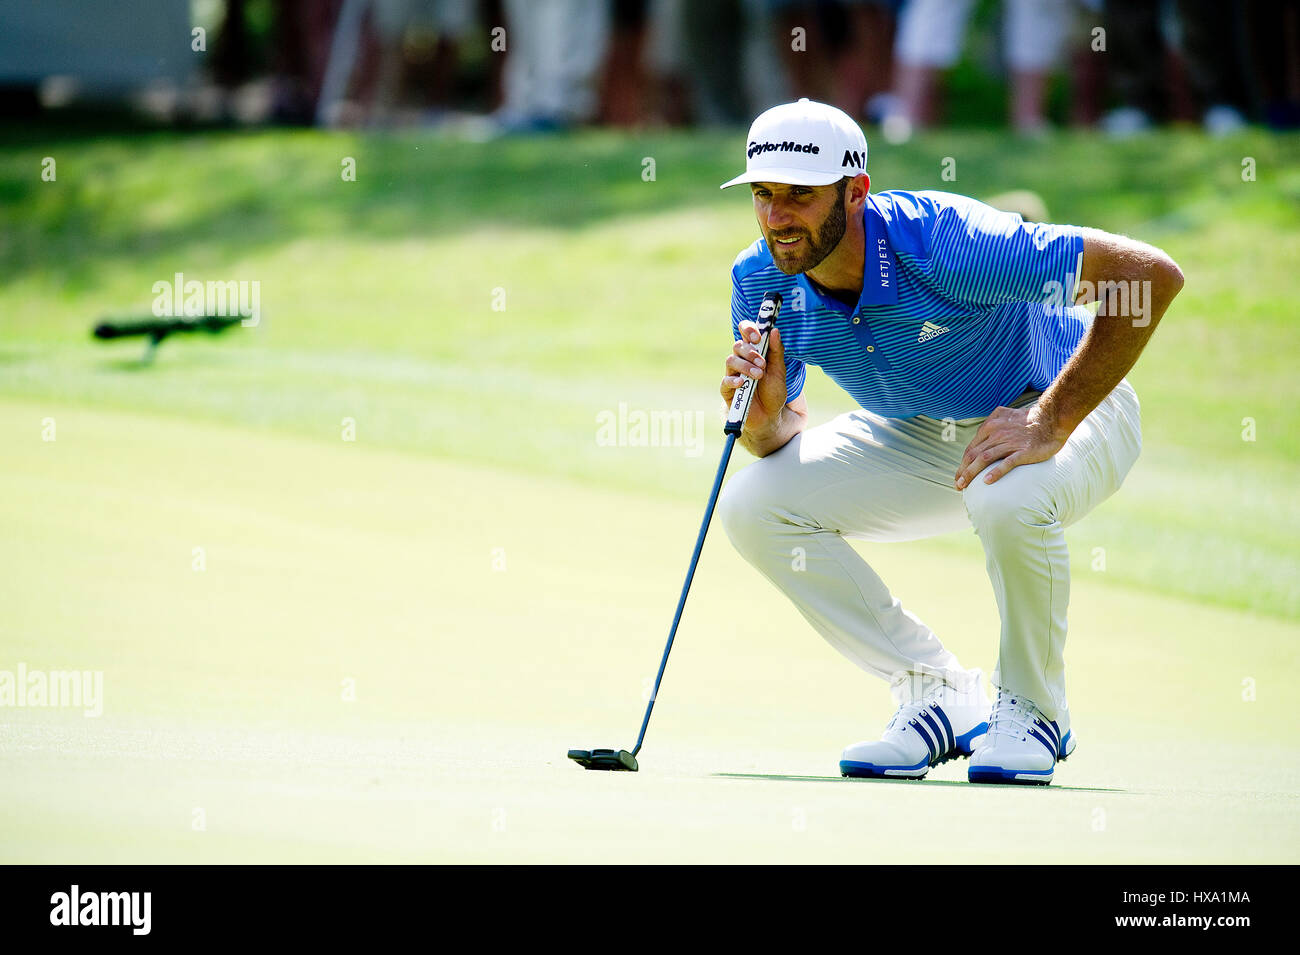 Austin, Texas, USA. 26. März 2017. Dustin Johnson in Aktion bei der World Golf Championships Dell Technologien Stockbild